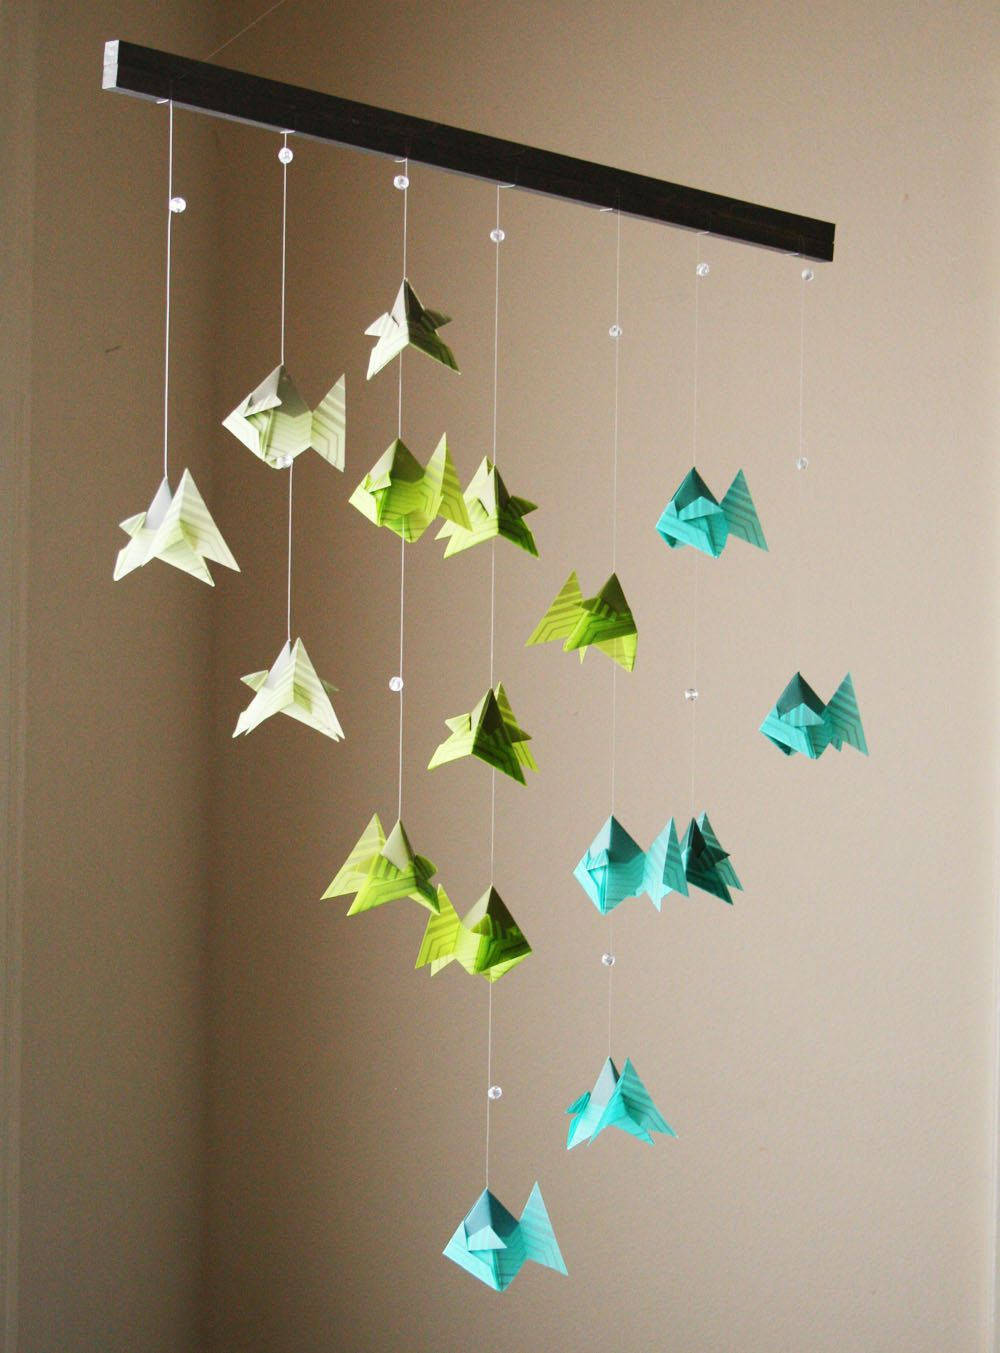 origami mobile school of caribbean fish hanging decor origami paper sculpture modern. Black Bedroom Furniture Sets. Home Design Ideas